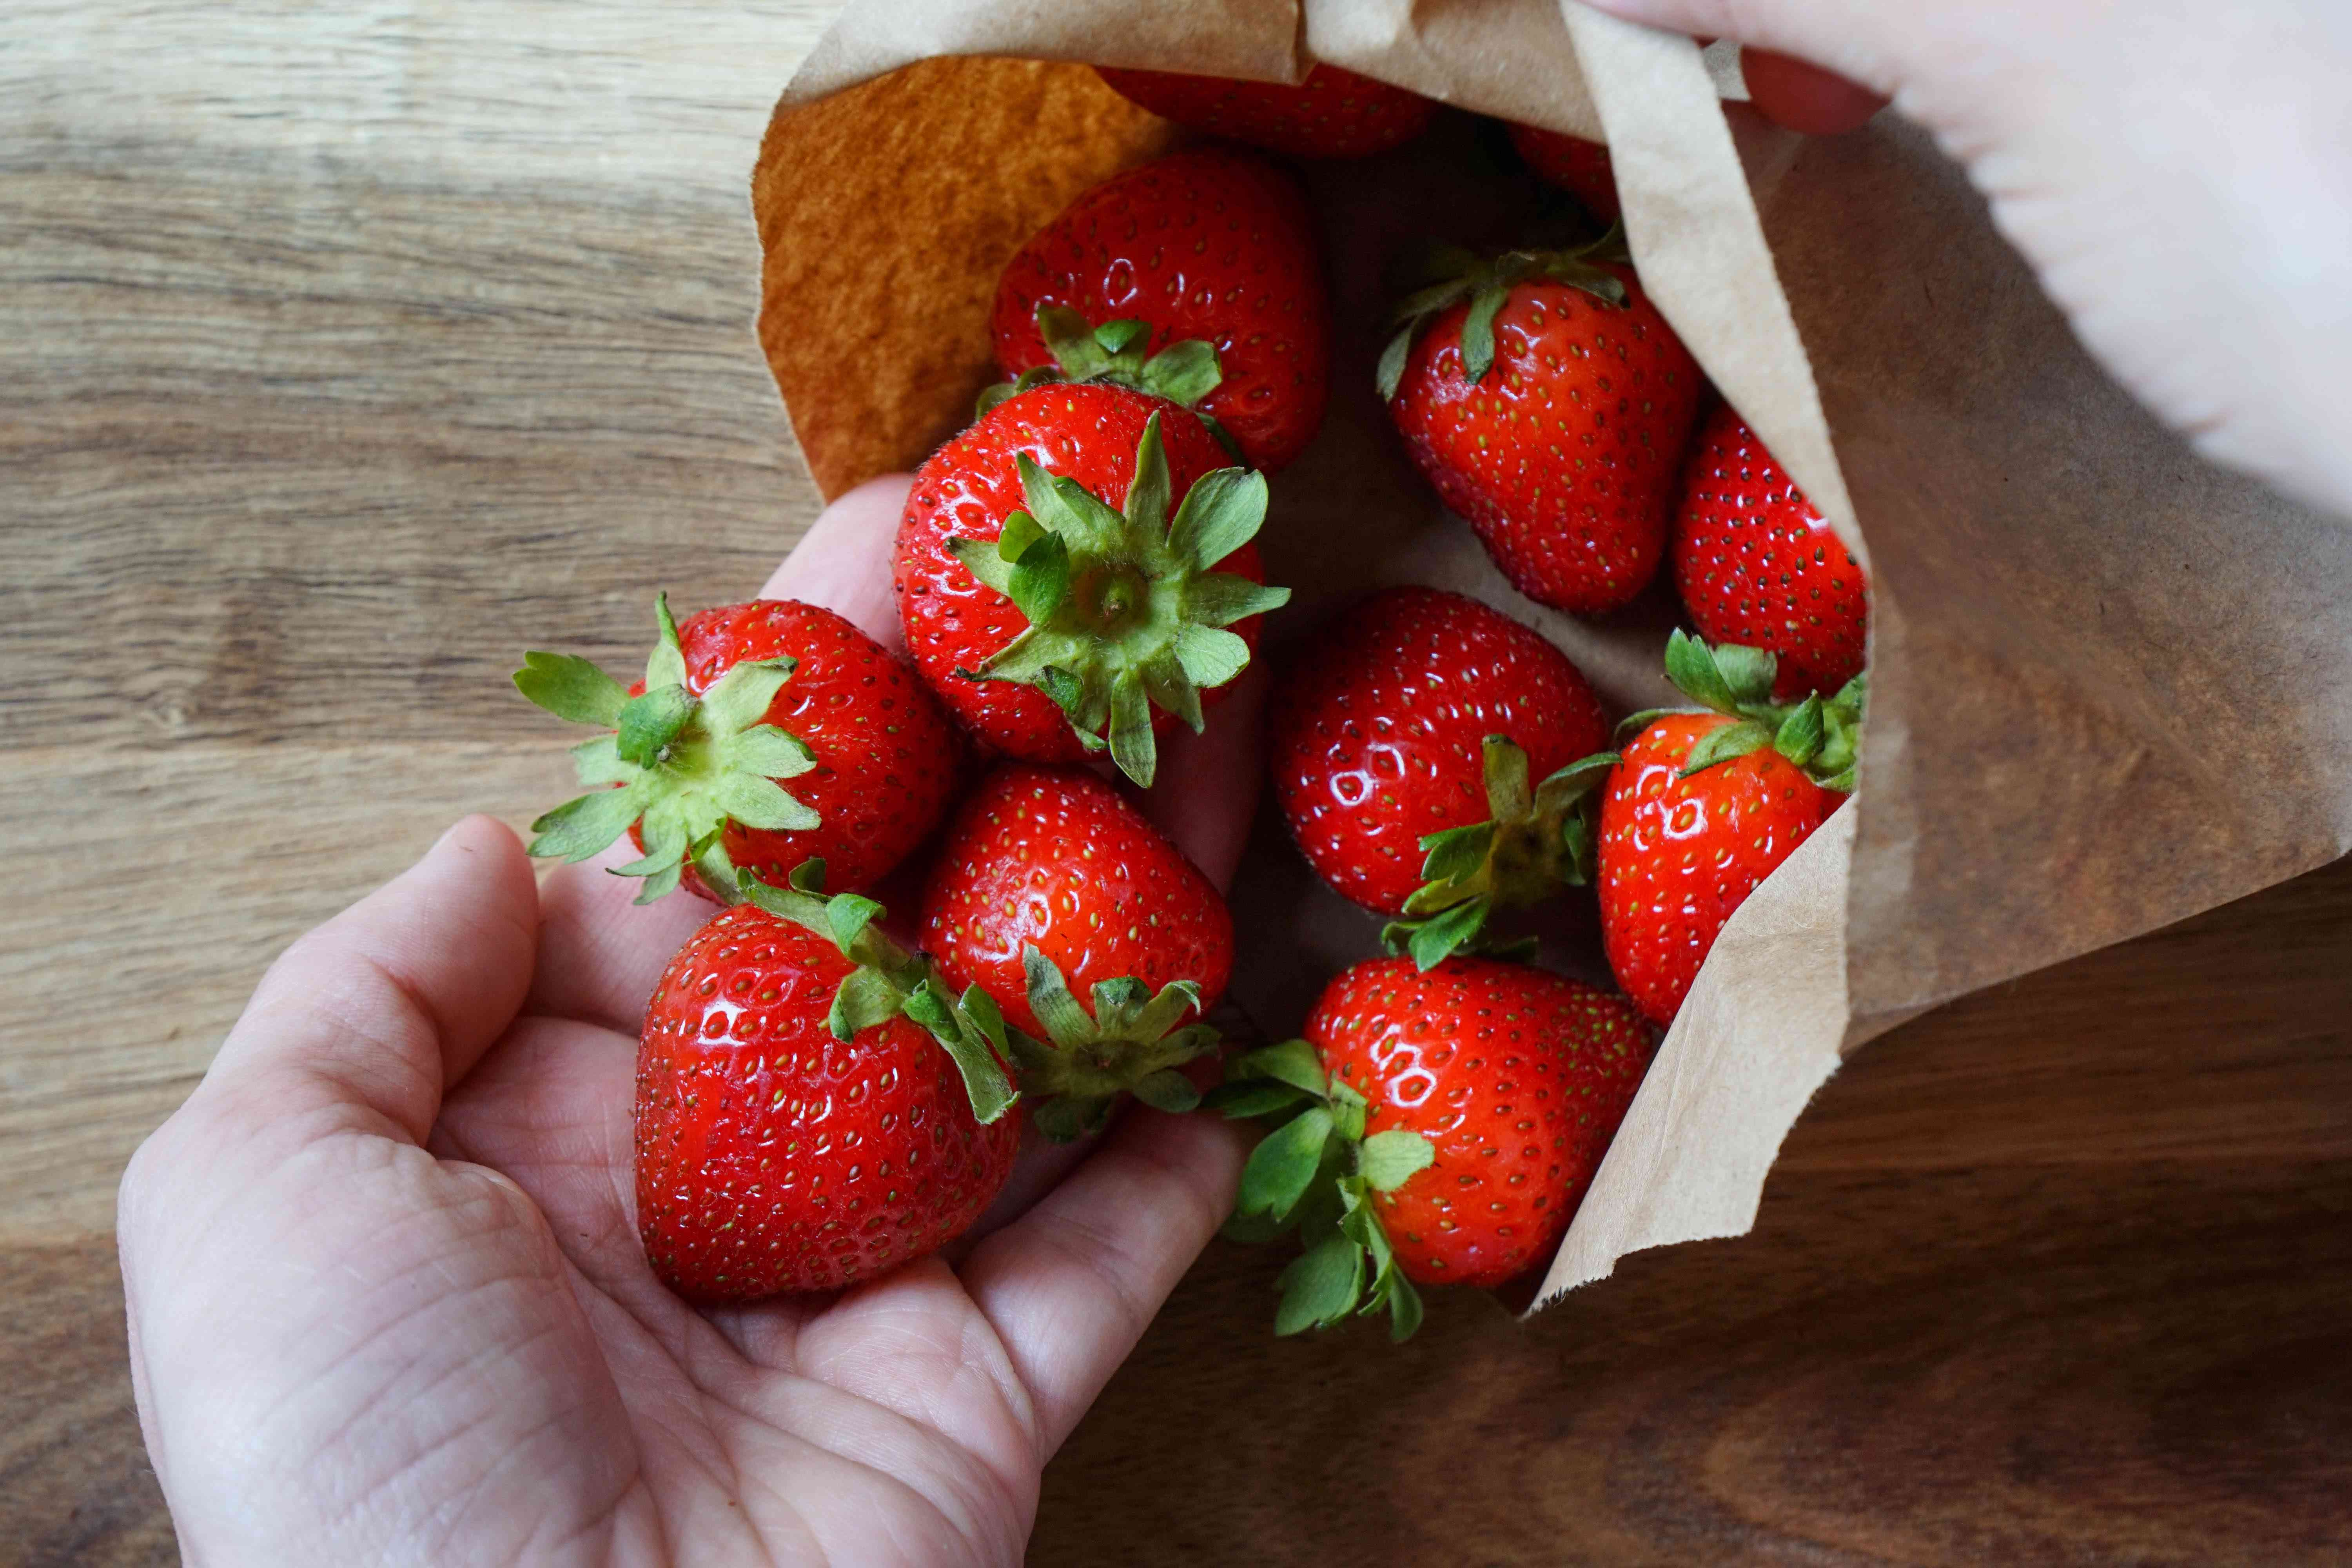 hands cradle fresh strawberries spilling out of brown paper bag